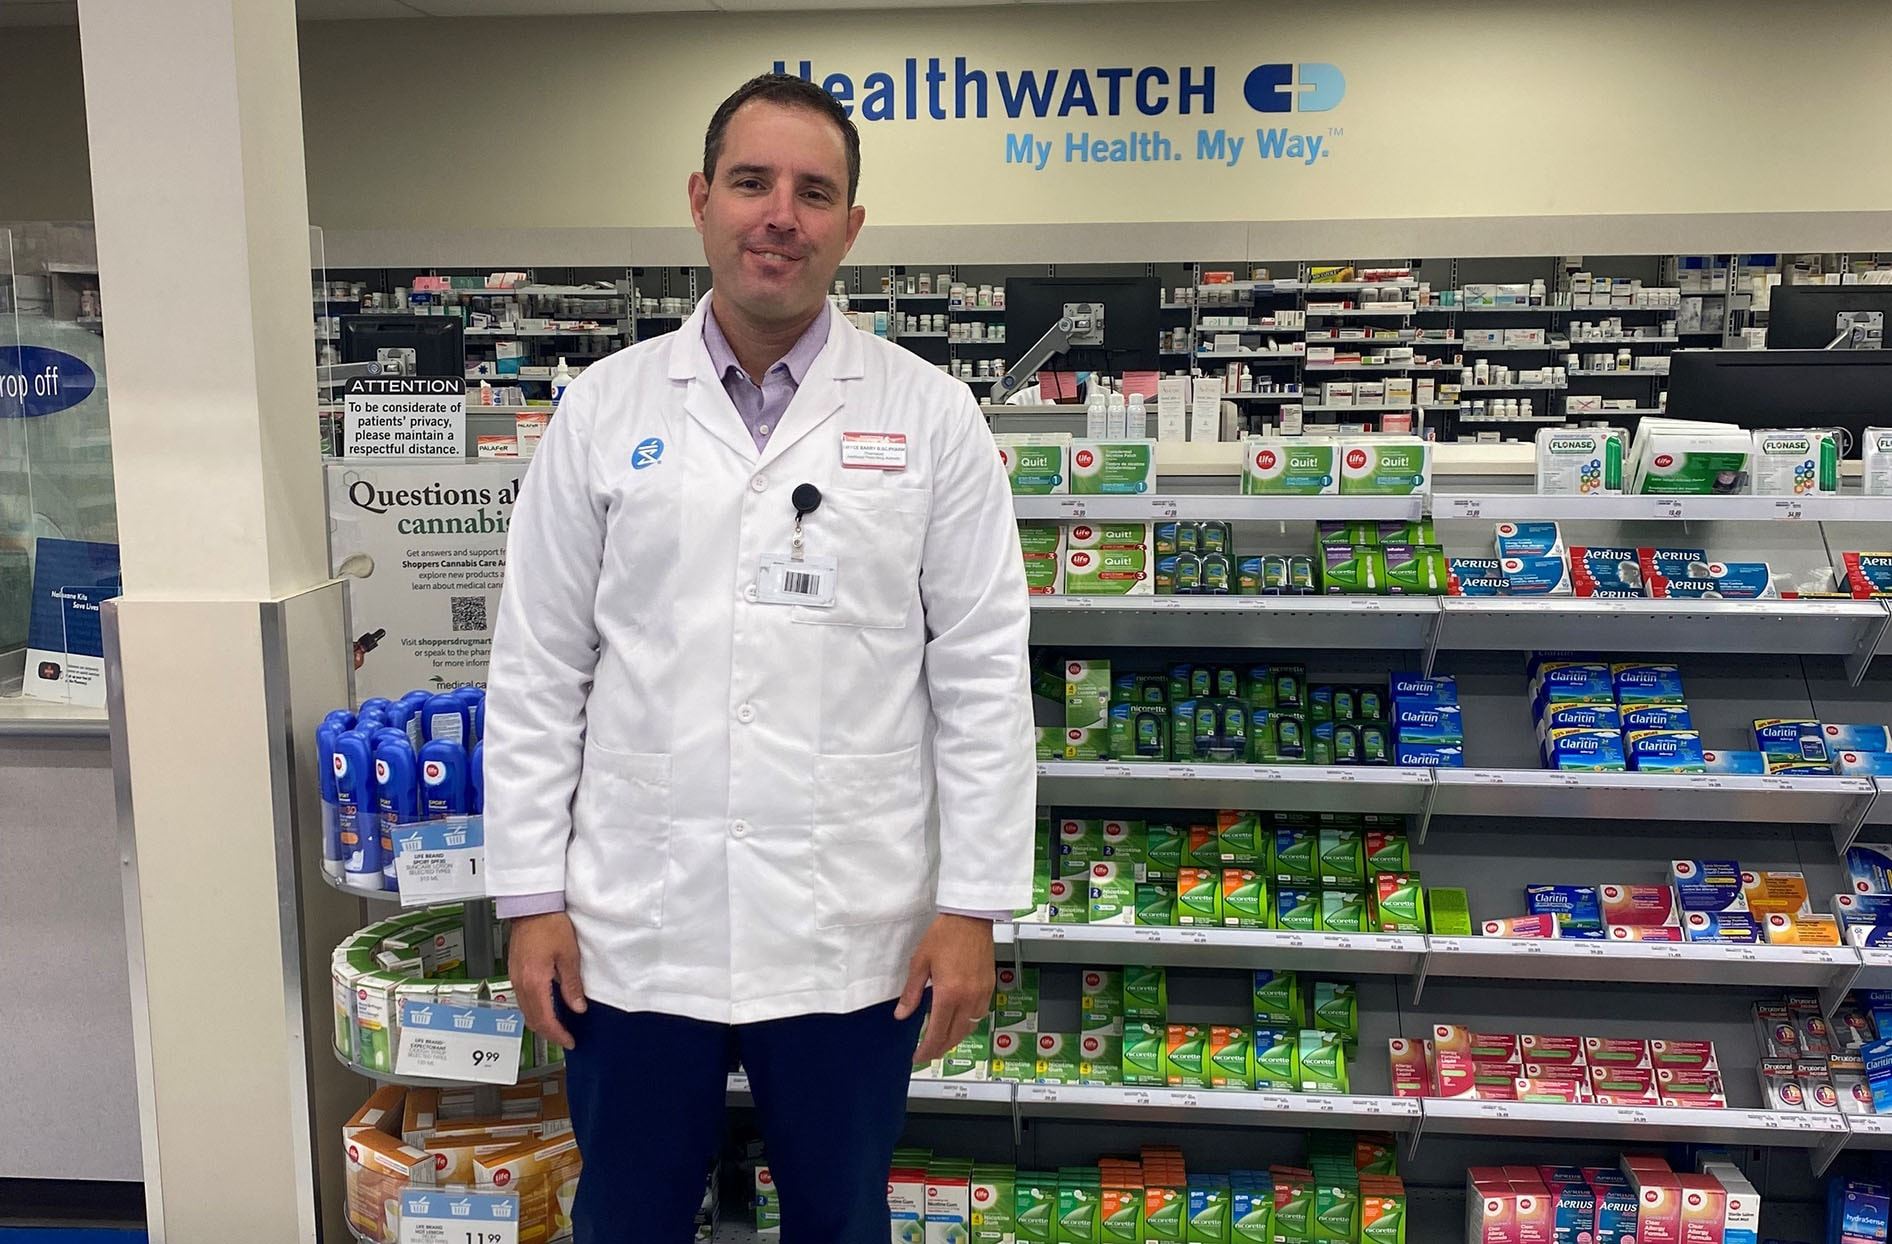 Bryce stands in front of the pharmacy counter at Shoppers Drug Mart smiling